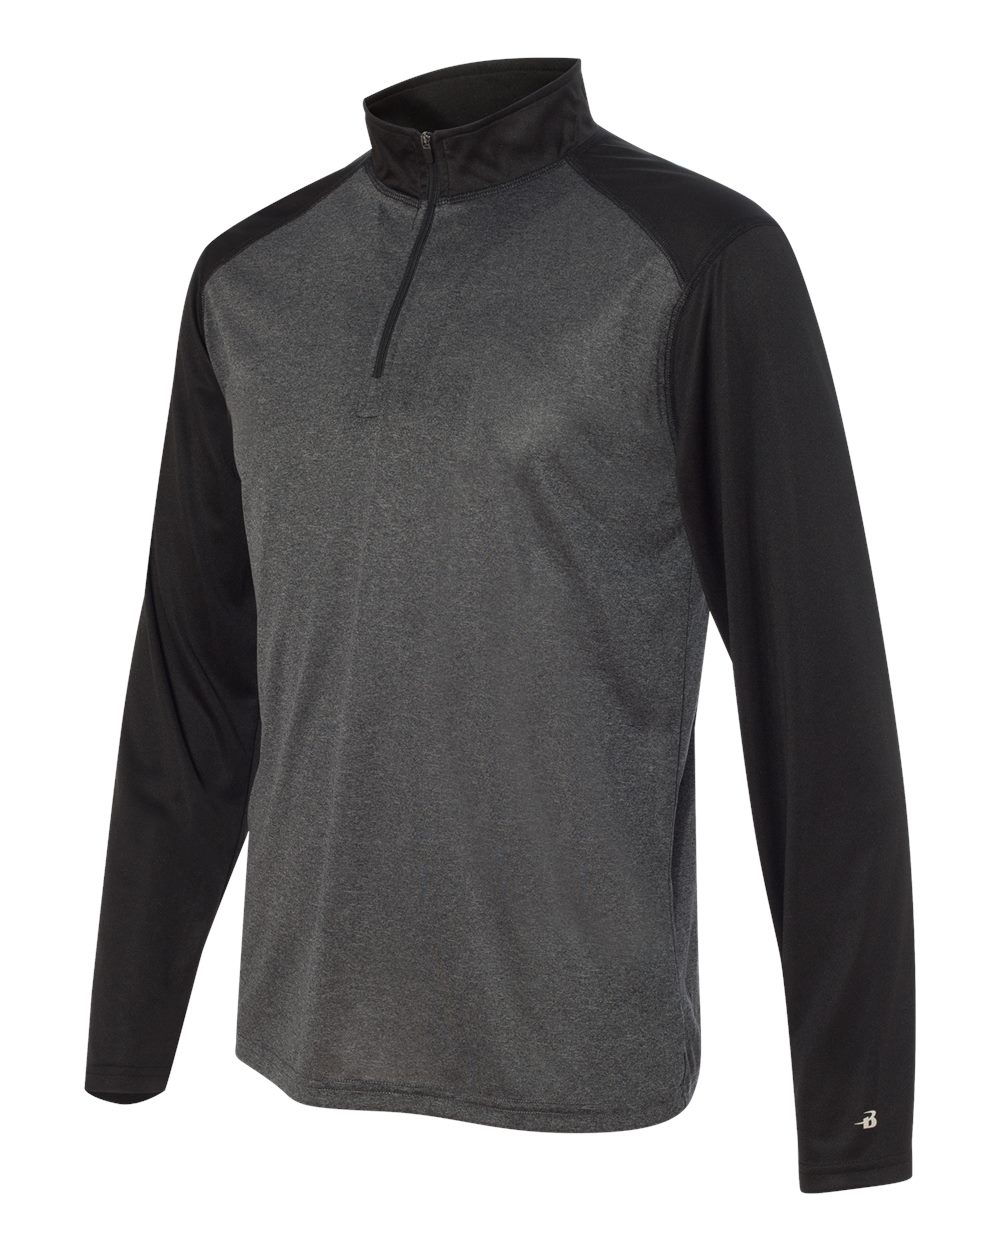 Badger 4394 - Pro Heather Quarter-Zip Pullover